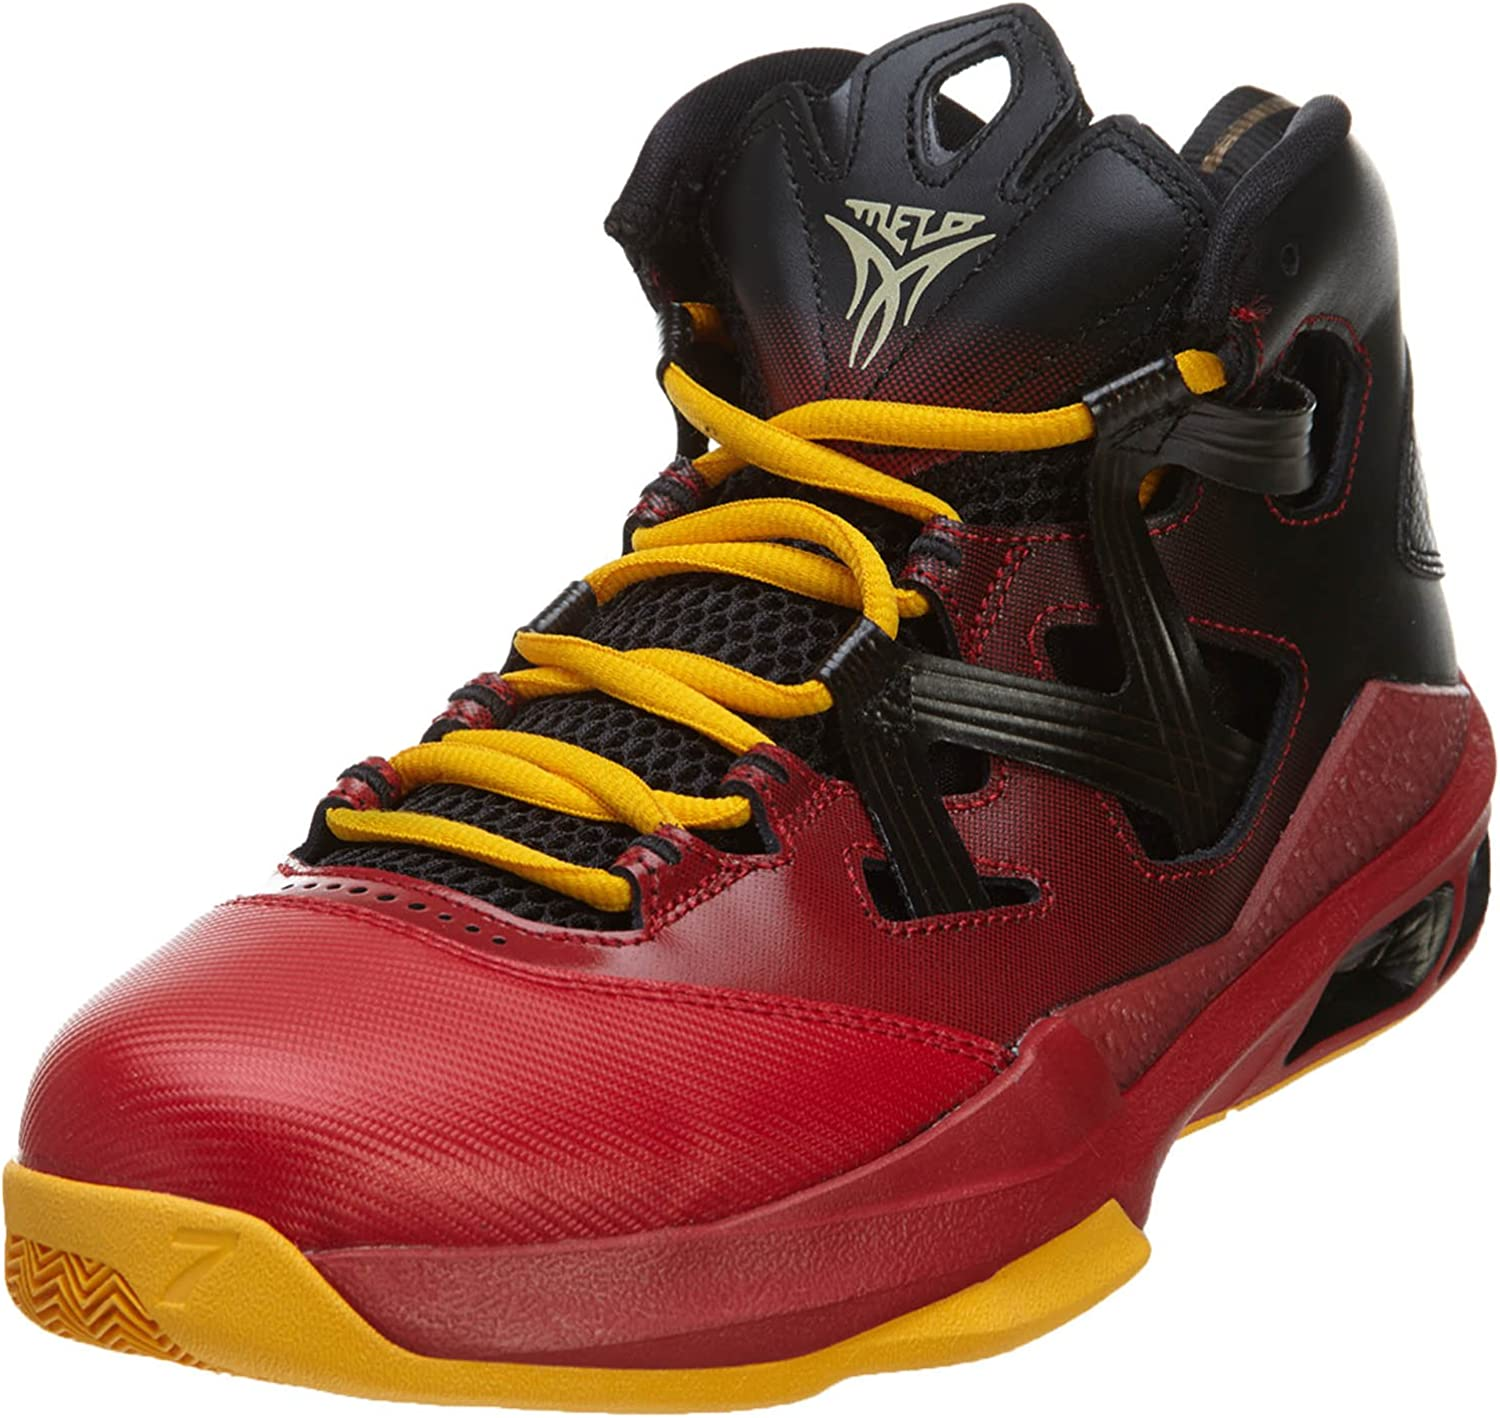 It is very popular Jordan Nike Men's Max 40% OFF Melo M9 Shoes Basketball